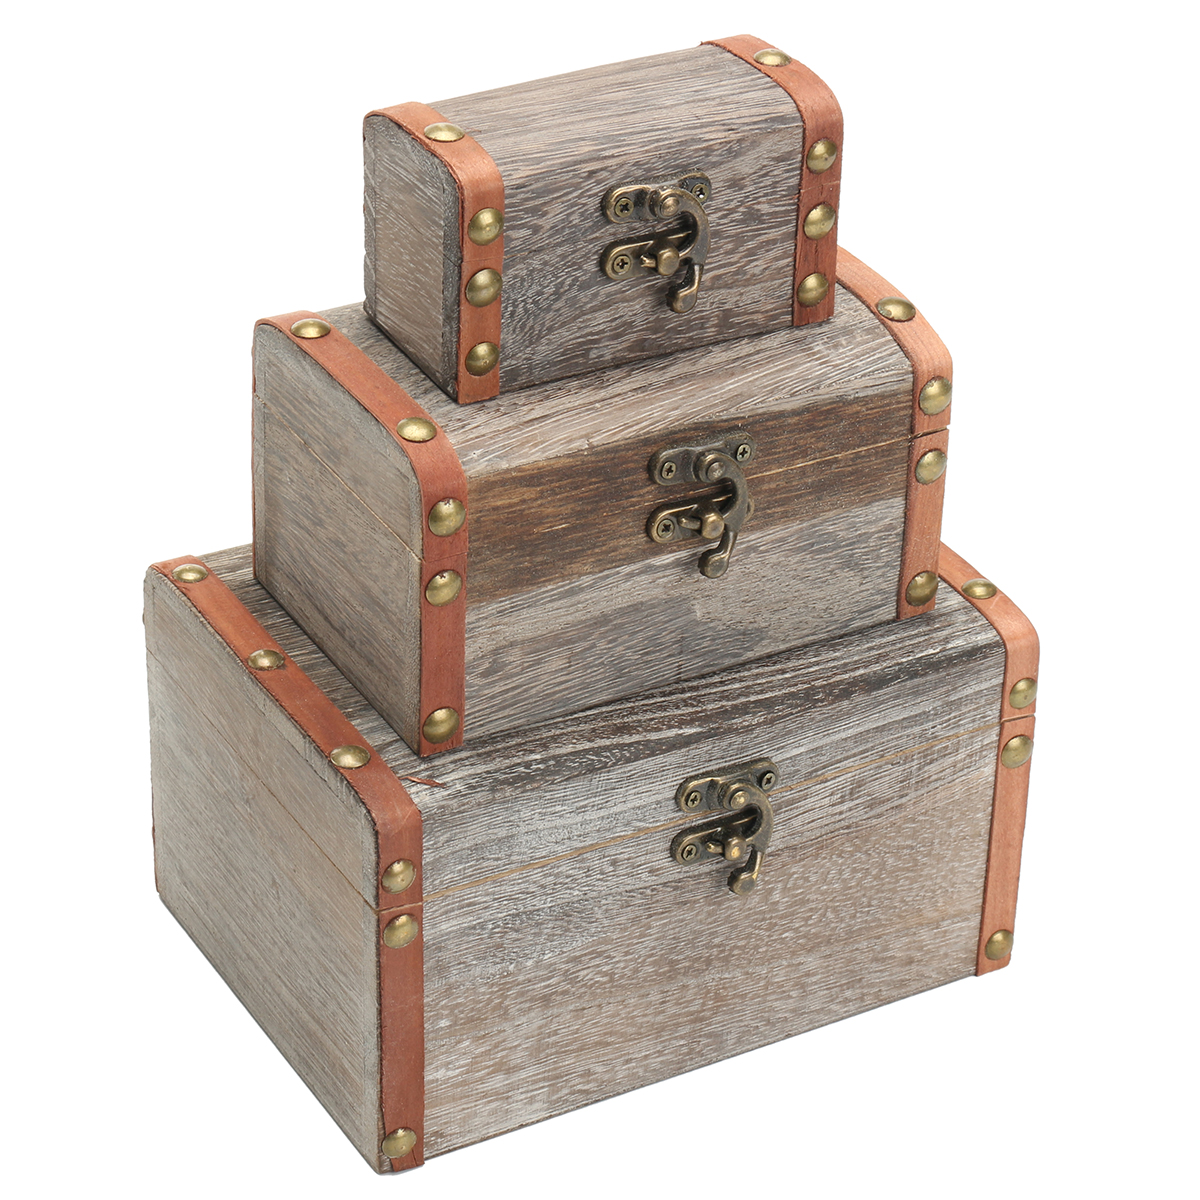 Treasure Chest Retro Wood Box Holder Earring Jewelry Holder Storage Case Trunk